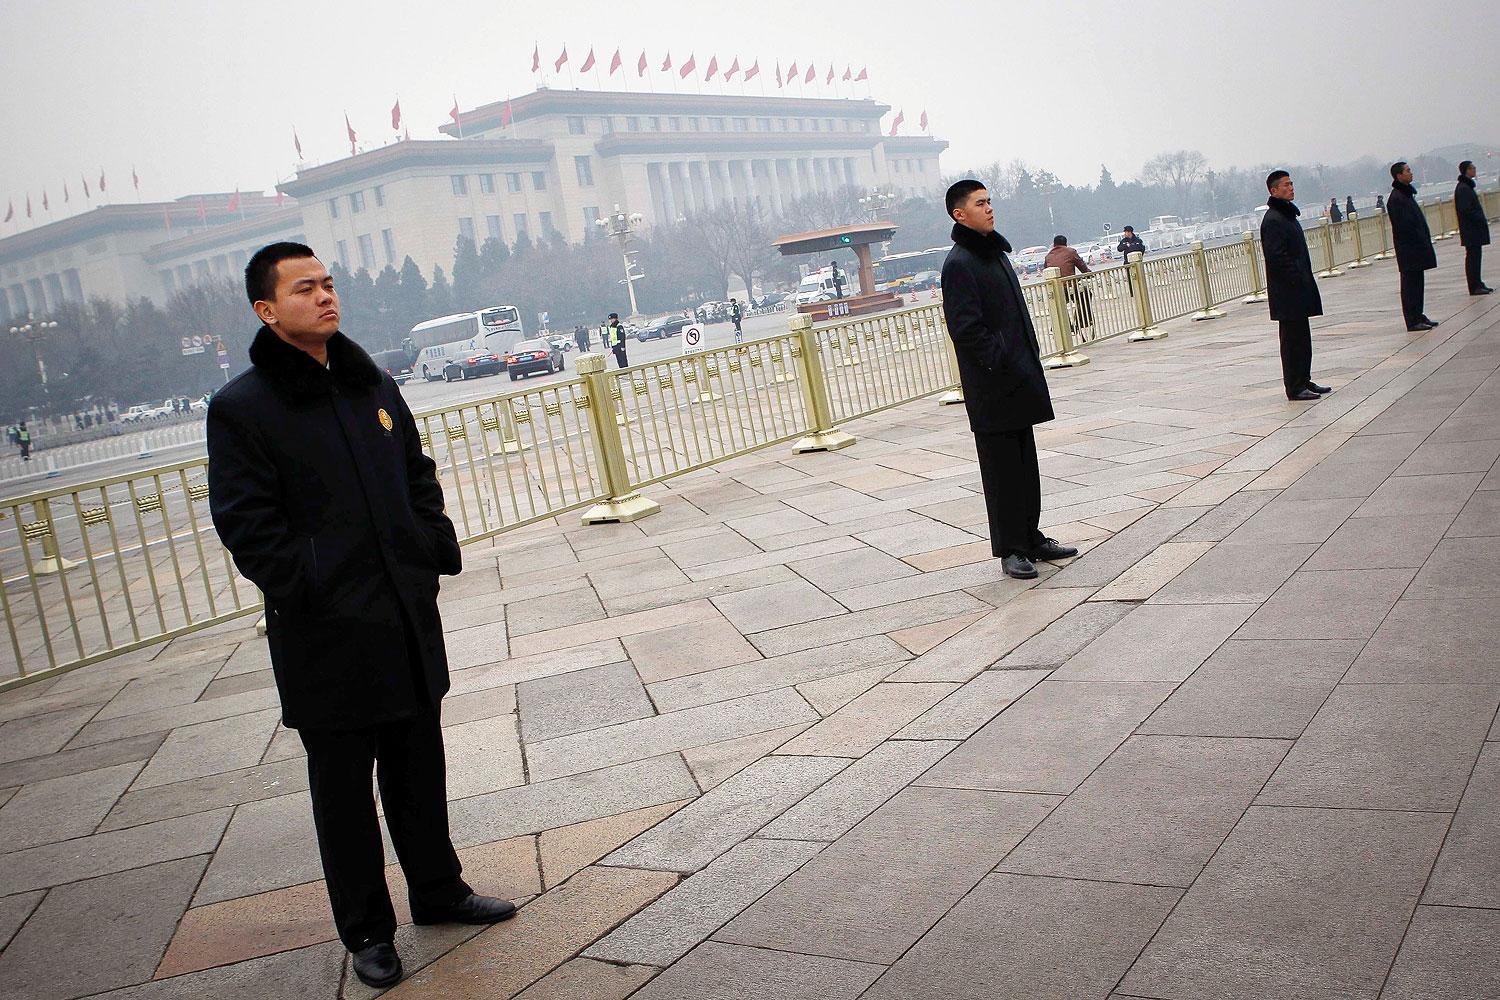 Chinese security guards stand in line in Tiananmen Square in Beijing, on March 3, 2014. Beijing has stepped up security for the NPC and CPPCC sessions this week